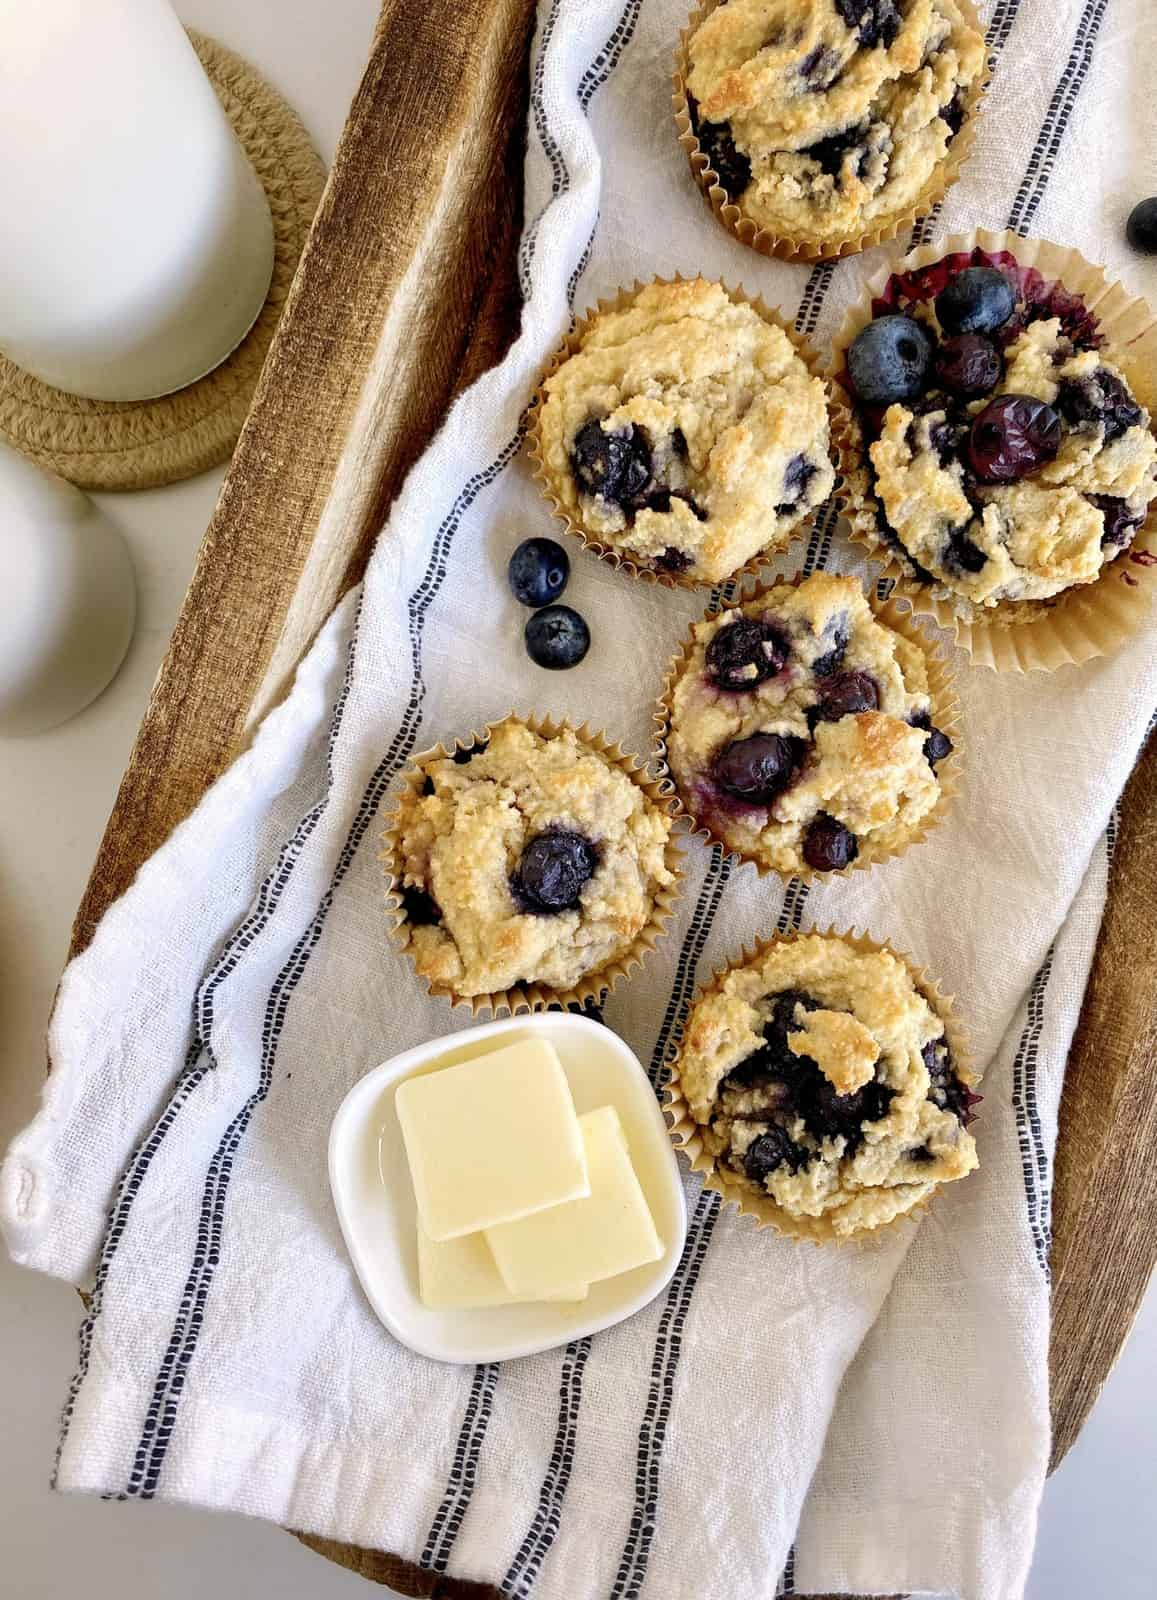 blueberry muffins on a towel